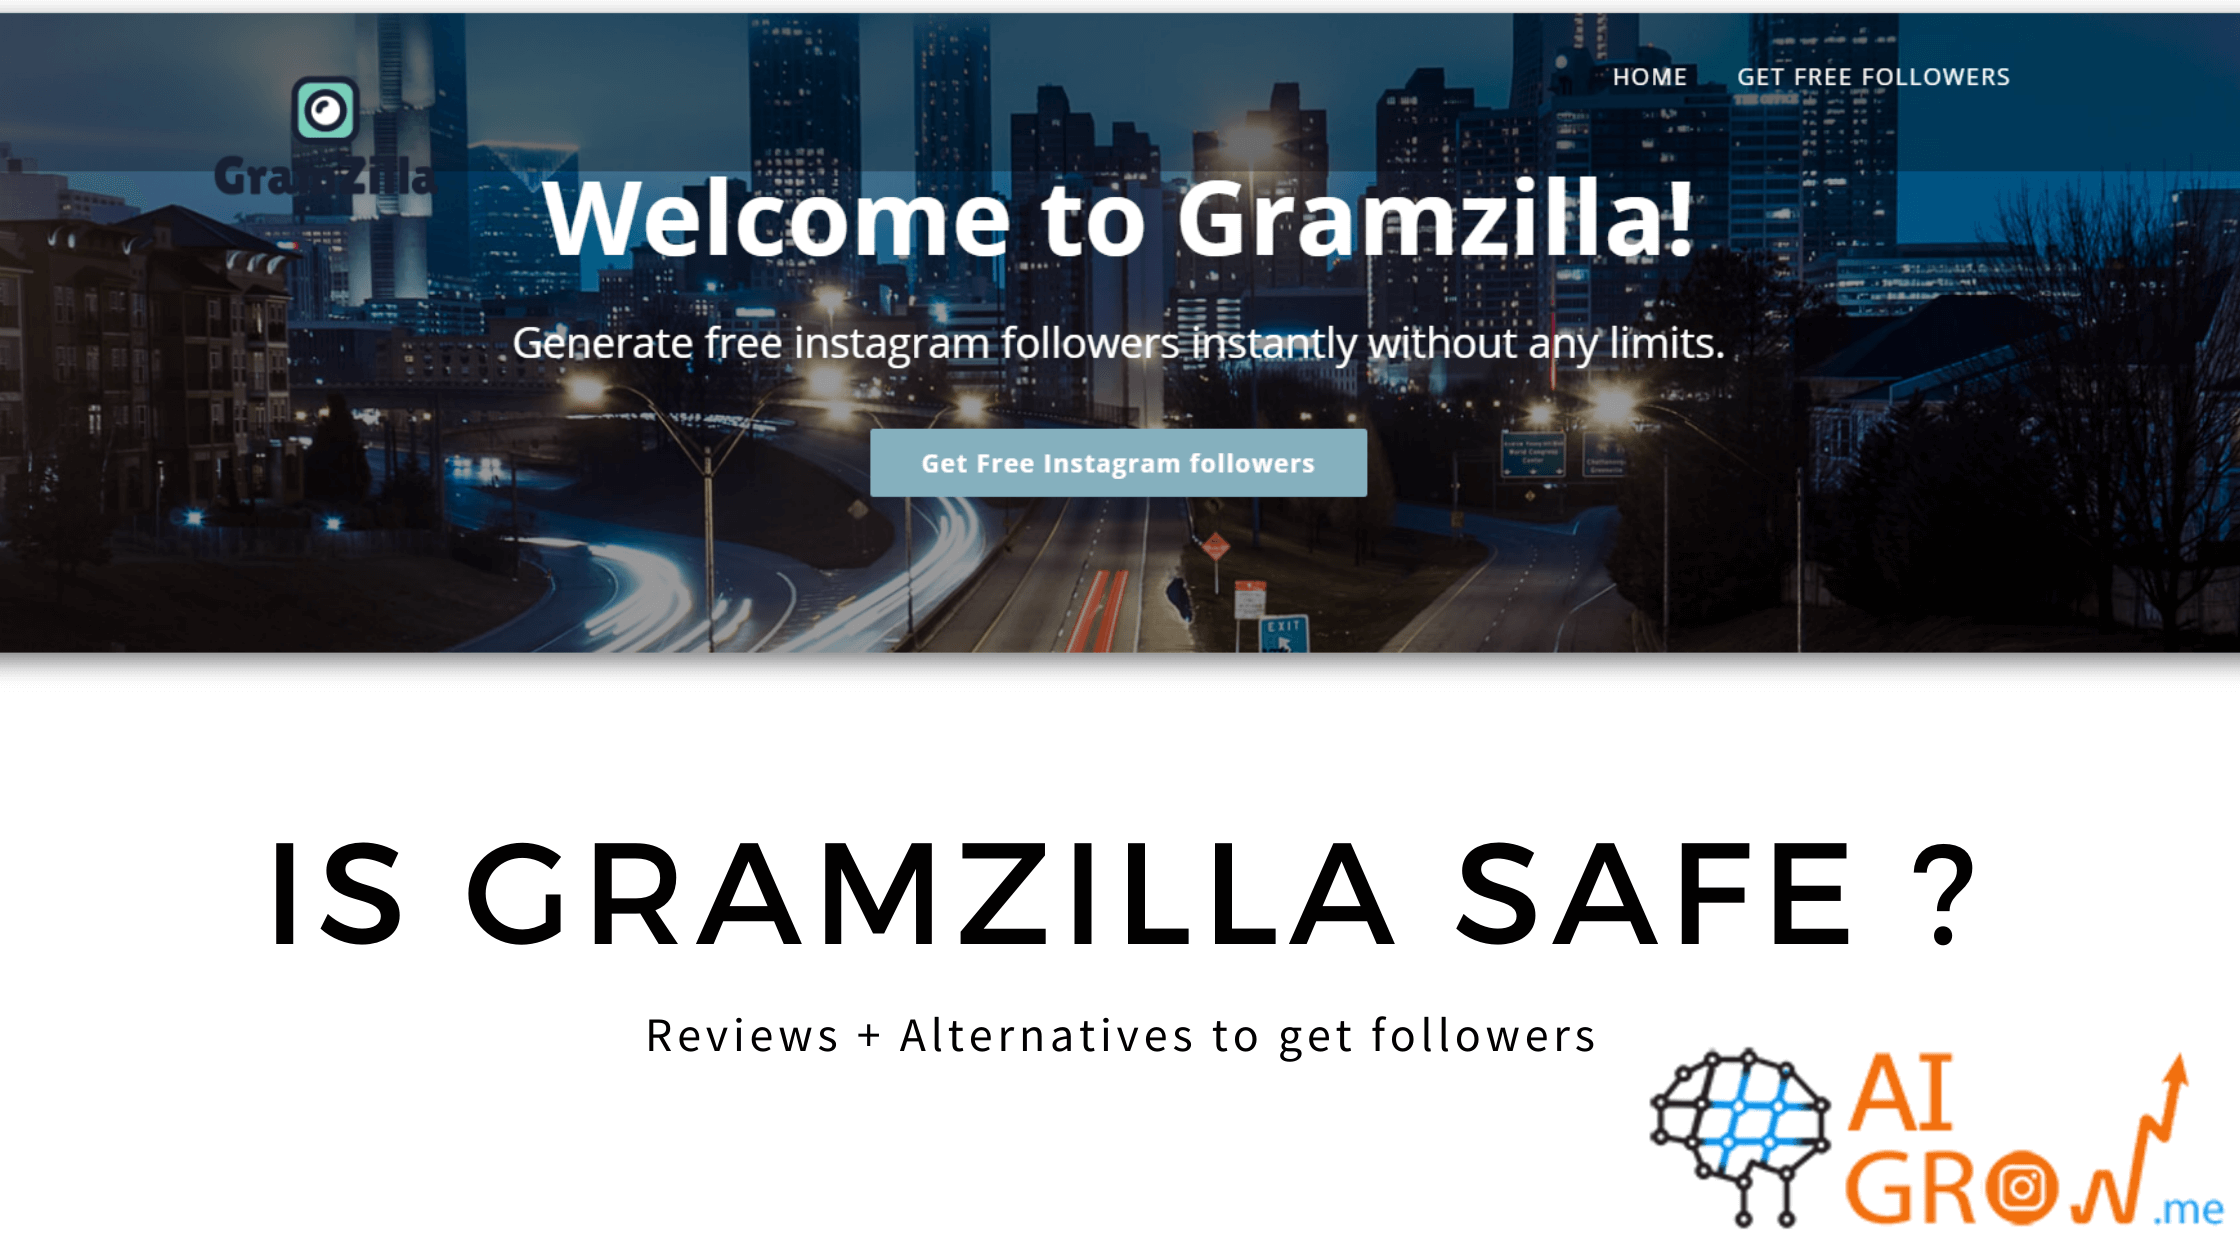 Is gramzilla safe ? Reviews + Alternatives to get followers